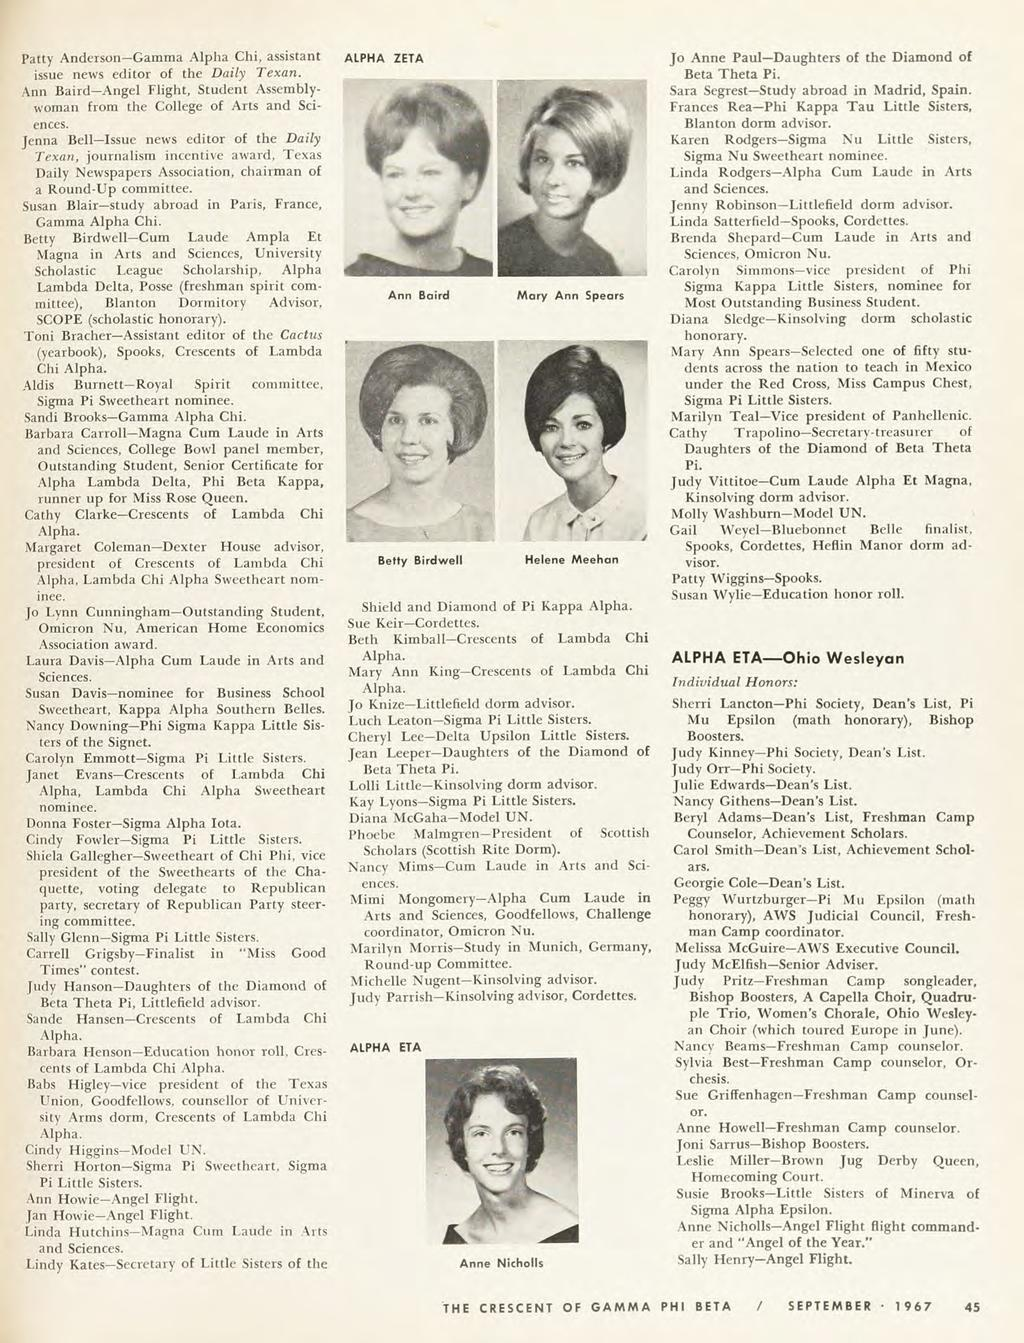 1967 Patty Anderson Gamma Alpha Chi, assistant issue news editor of the Daily Texan. Ann Baird Angel Flight, Student Assembly woman from the College of Arts and Sci ences.